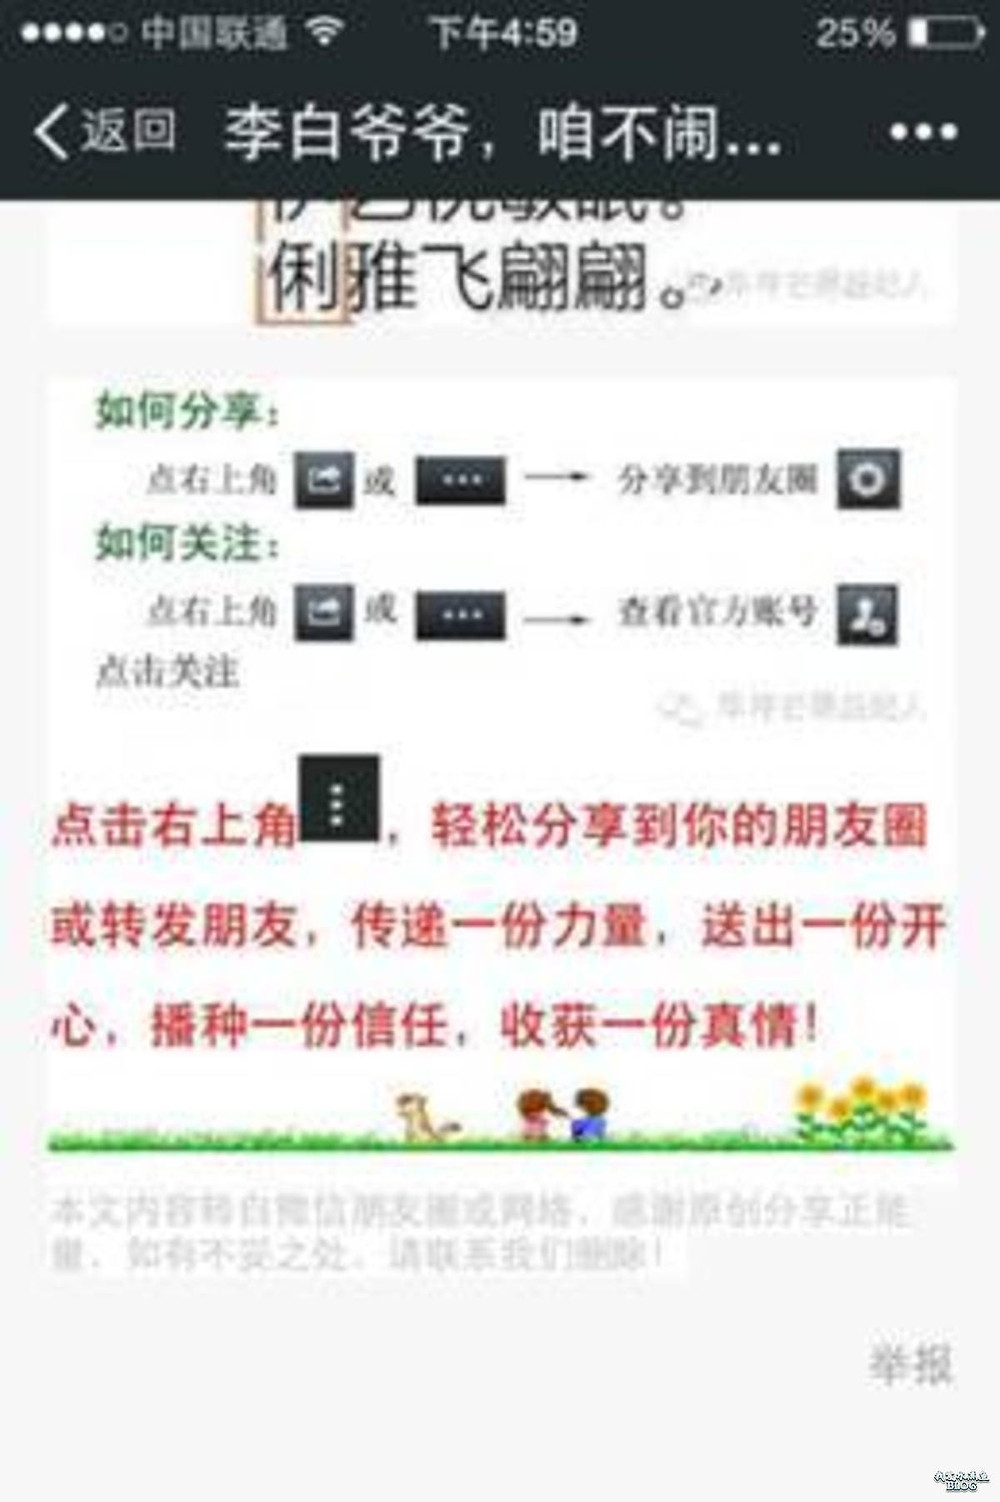 wechat tutorial on how to share a message